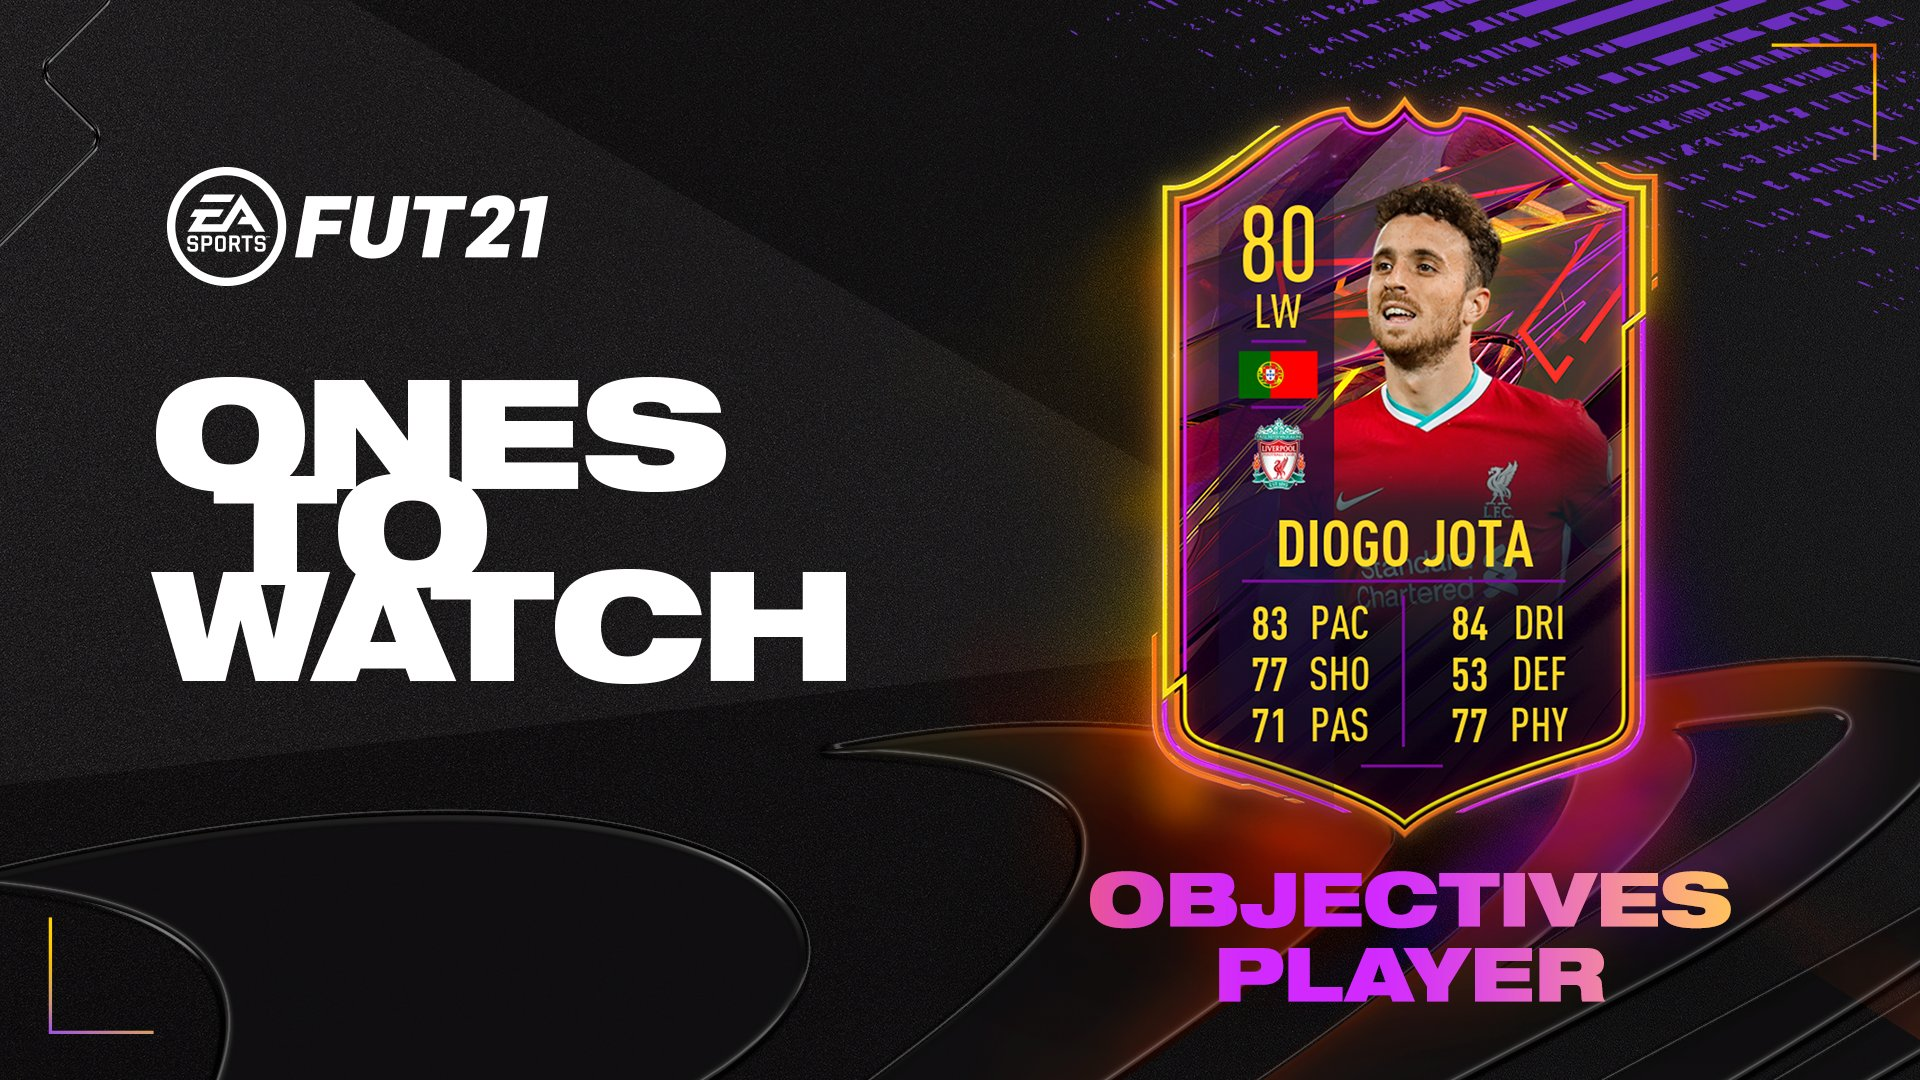 Diogo Jota Ones to Watch